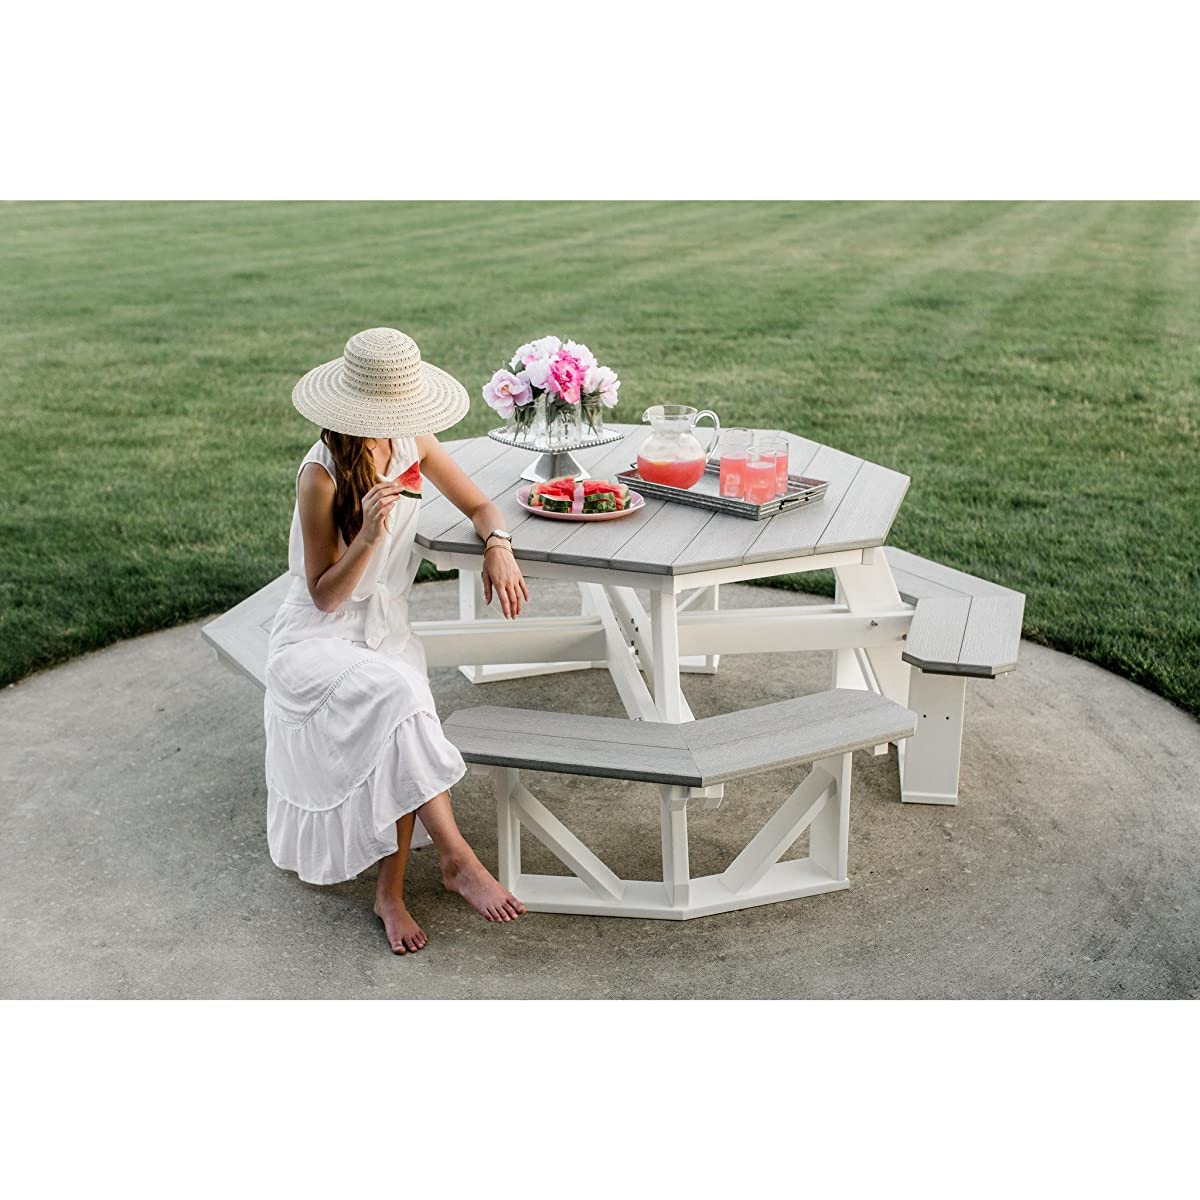 Wildridge Recycled Plastic Octagon Picnic Table - Ships in 10-14 Business Days